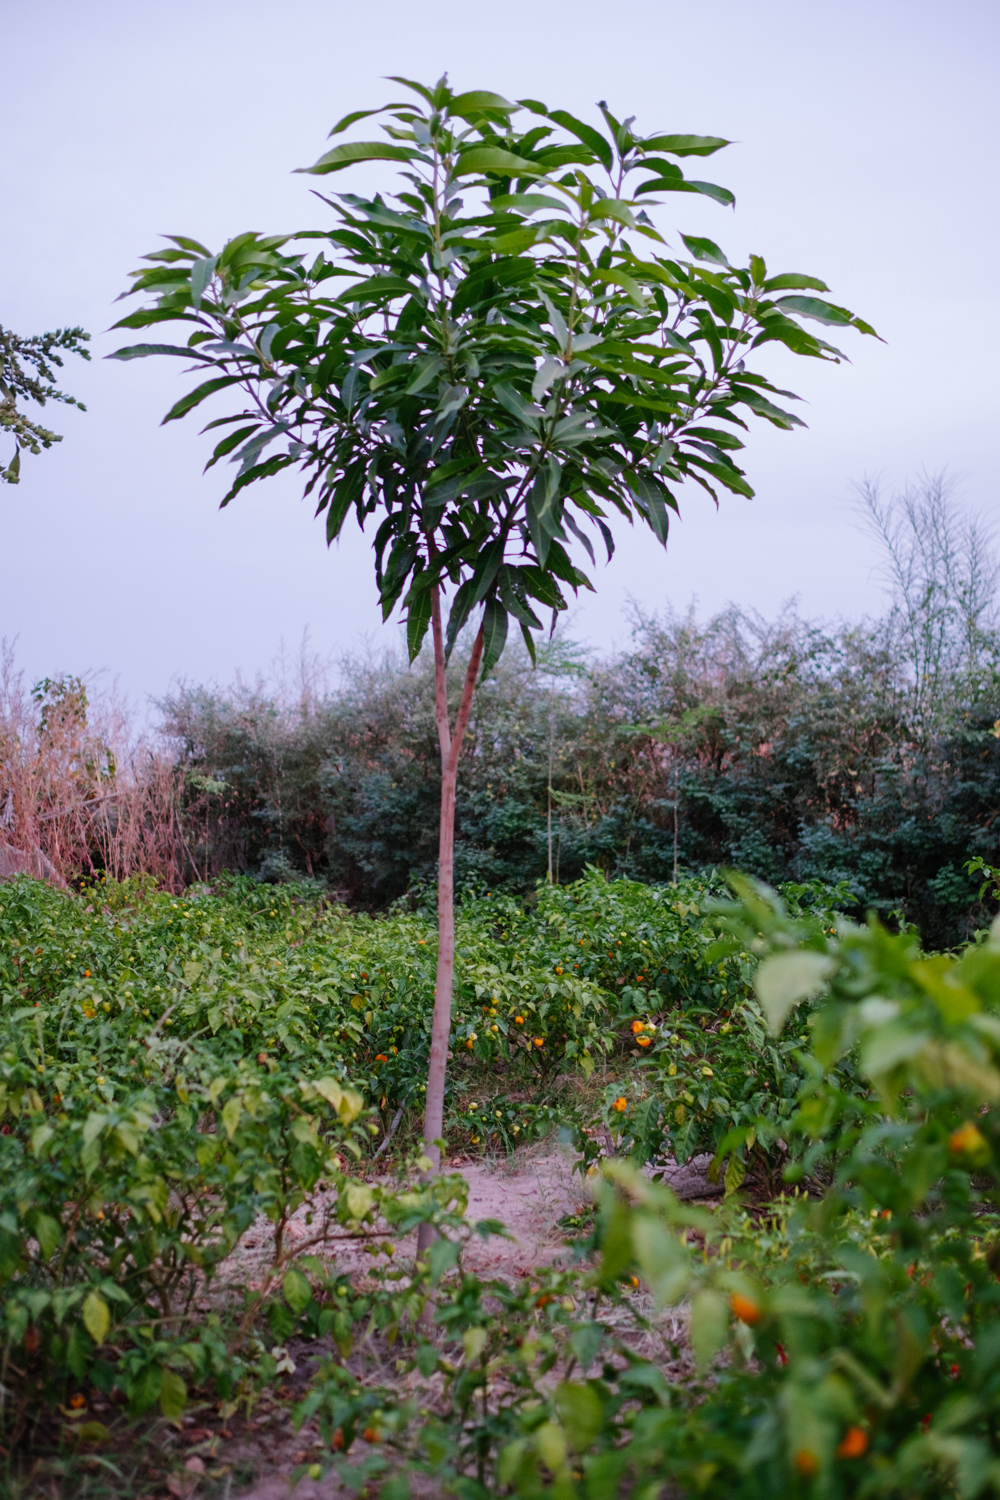 Senegal-Ecosia-Forest-Garden-Agroforestry-trees-climate-change--51-of-103-